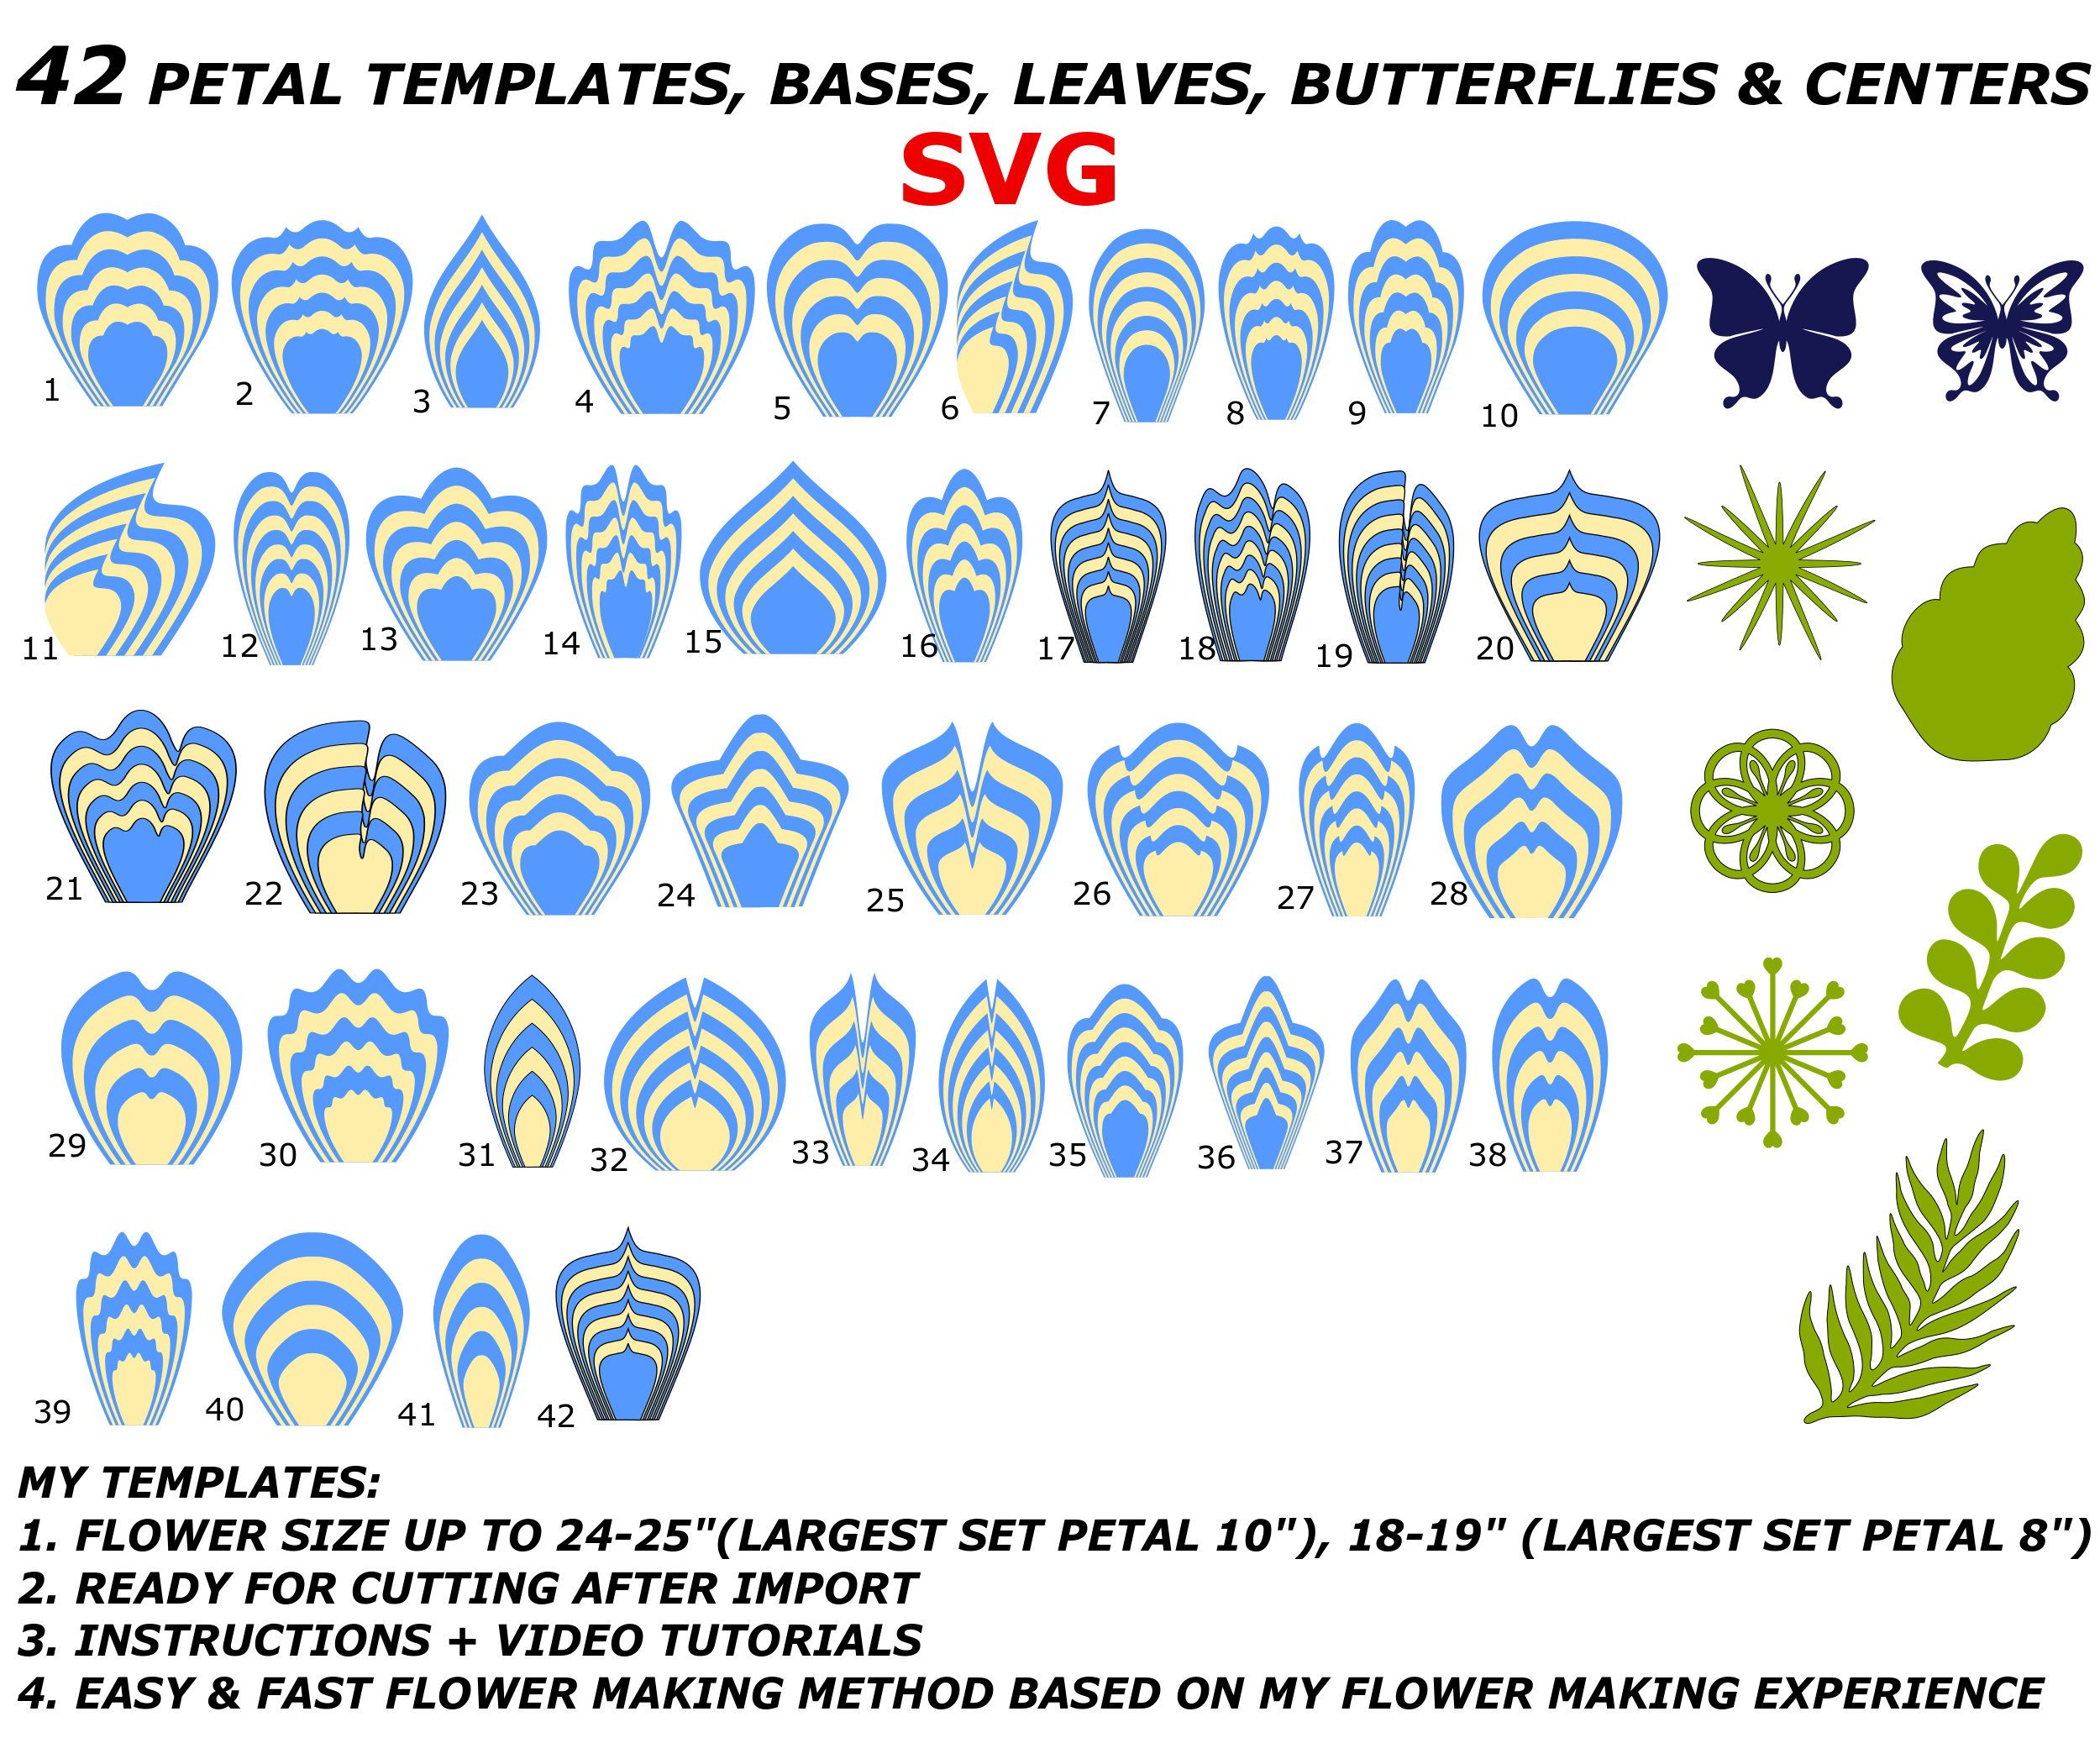 42 Giant Paper Flower Template SVG Bundle Plus Leaves Centers Butterflies SVG, Large Paper flowers Svg, Flores De papel, Giant Flowers #giantpaperflowers